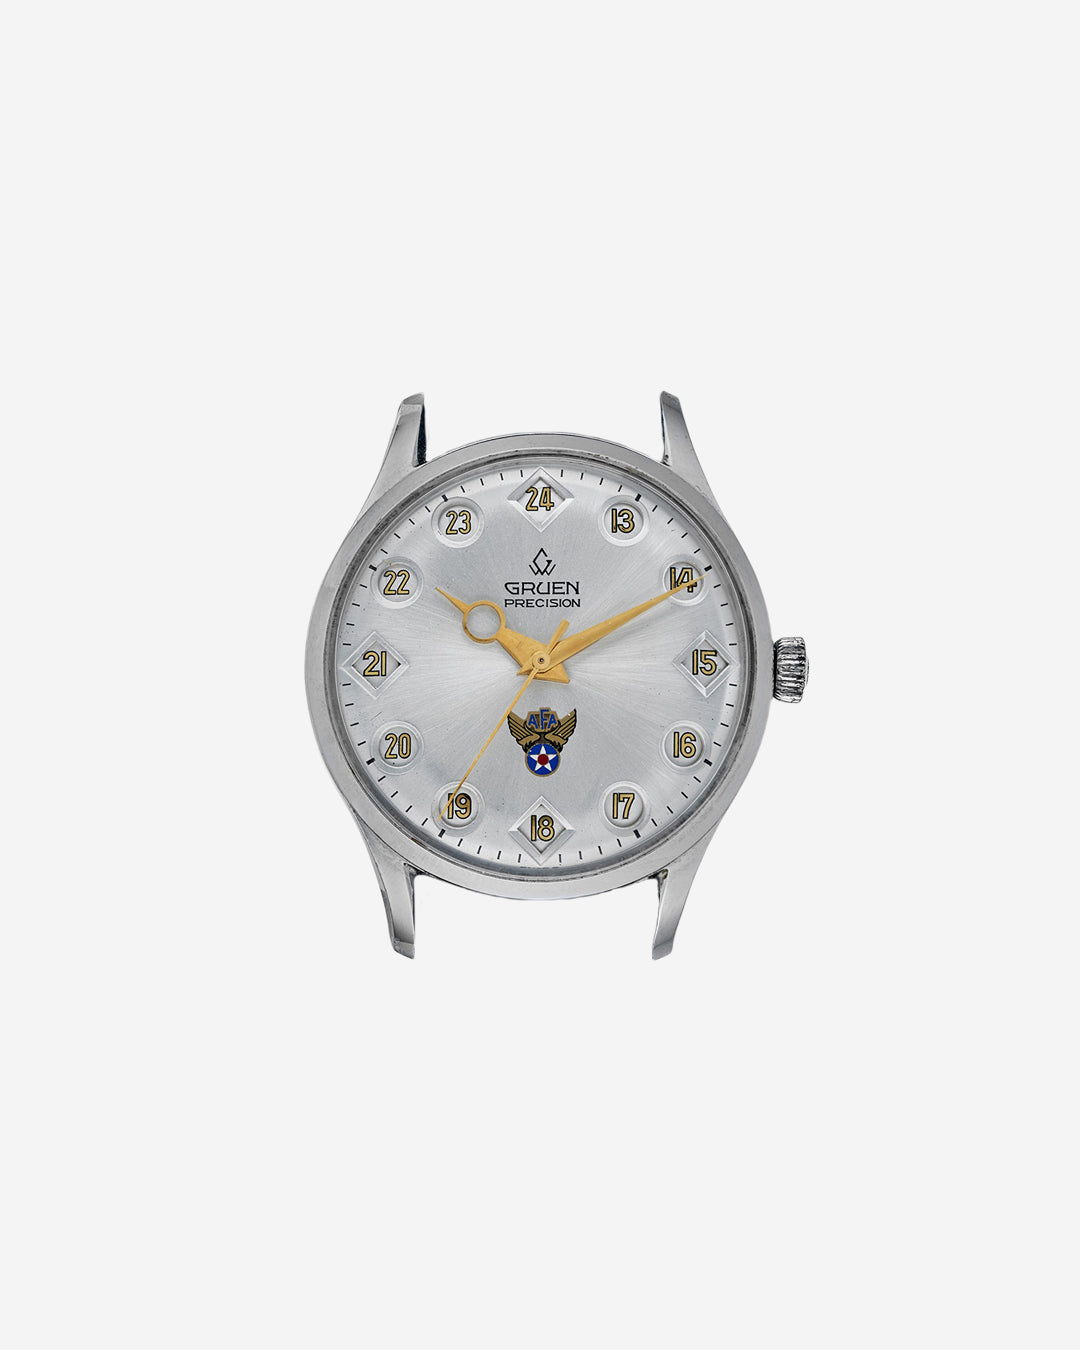 Gruen Airflight watch in The Complications Lost to Time for A Collected Man London